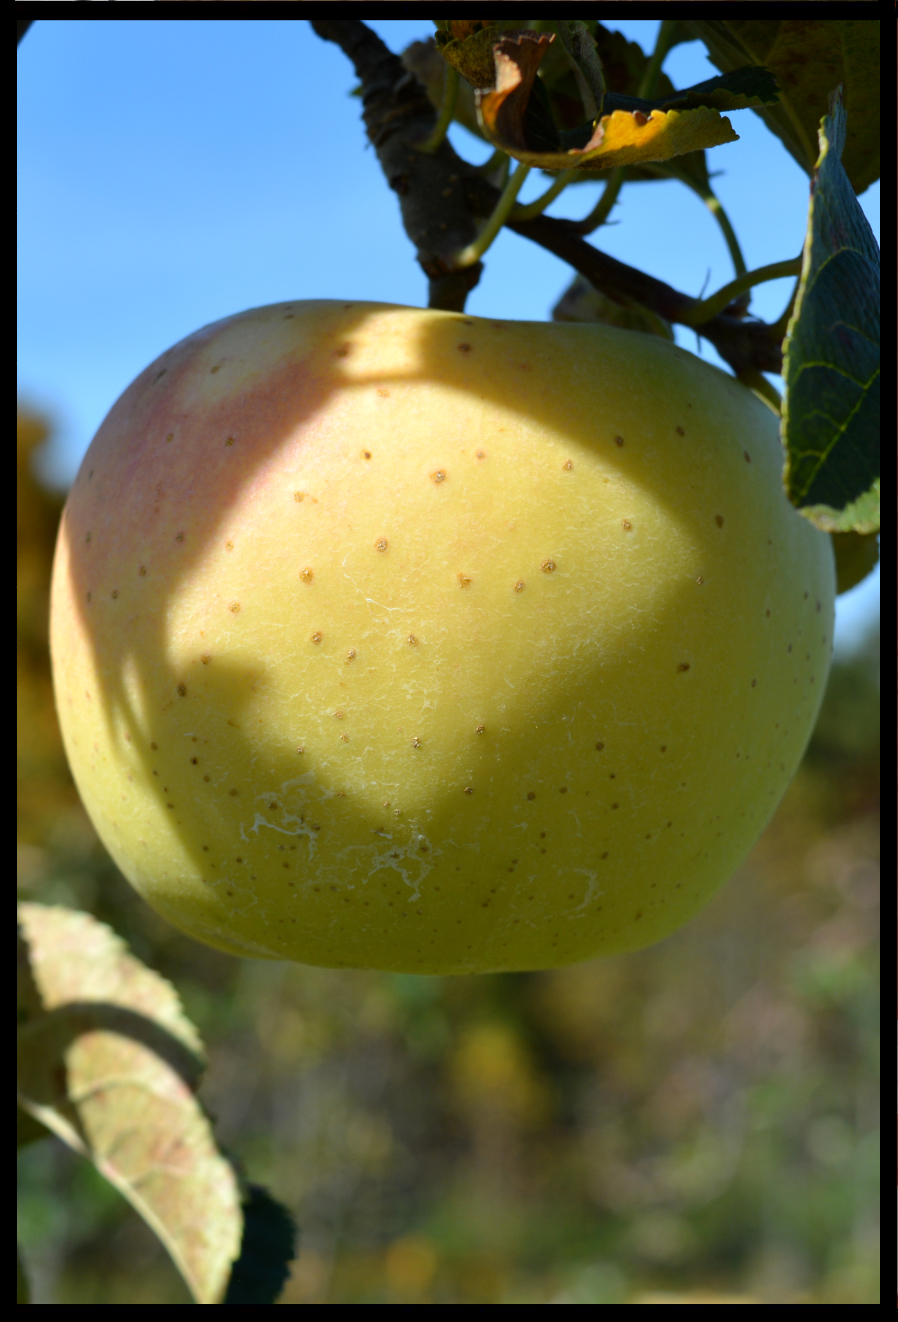 yellow apple with small brown spots and a slight pink blush